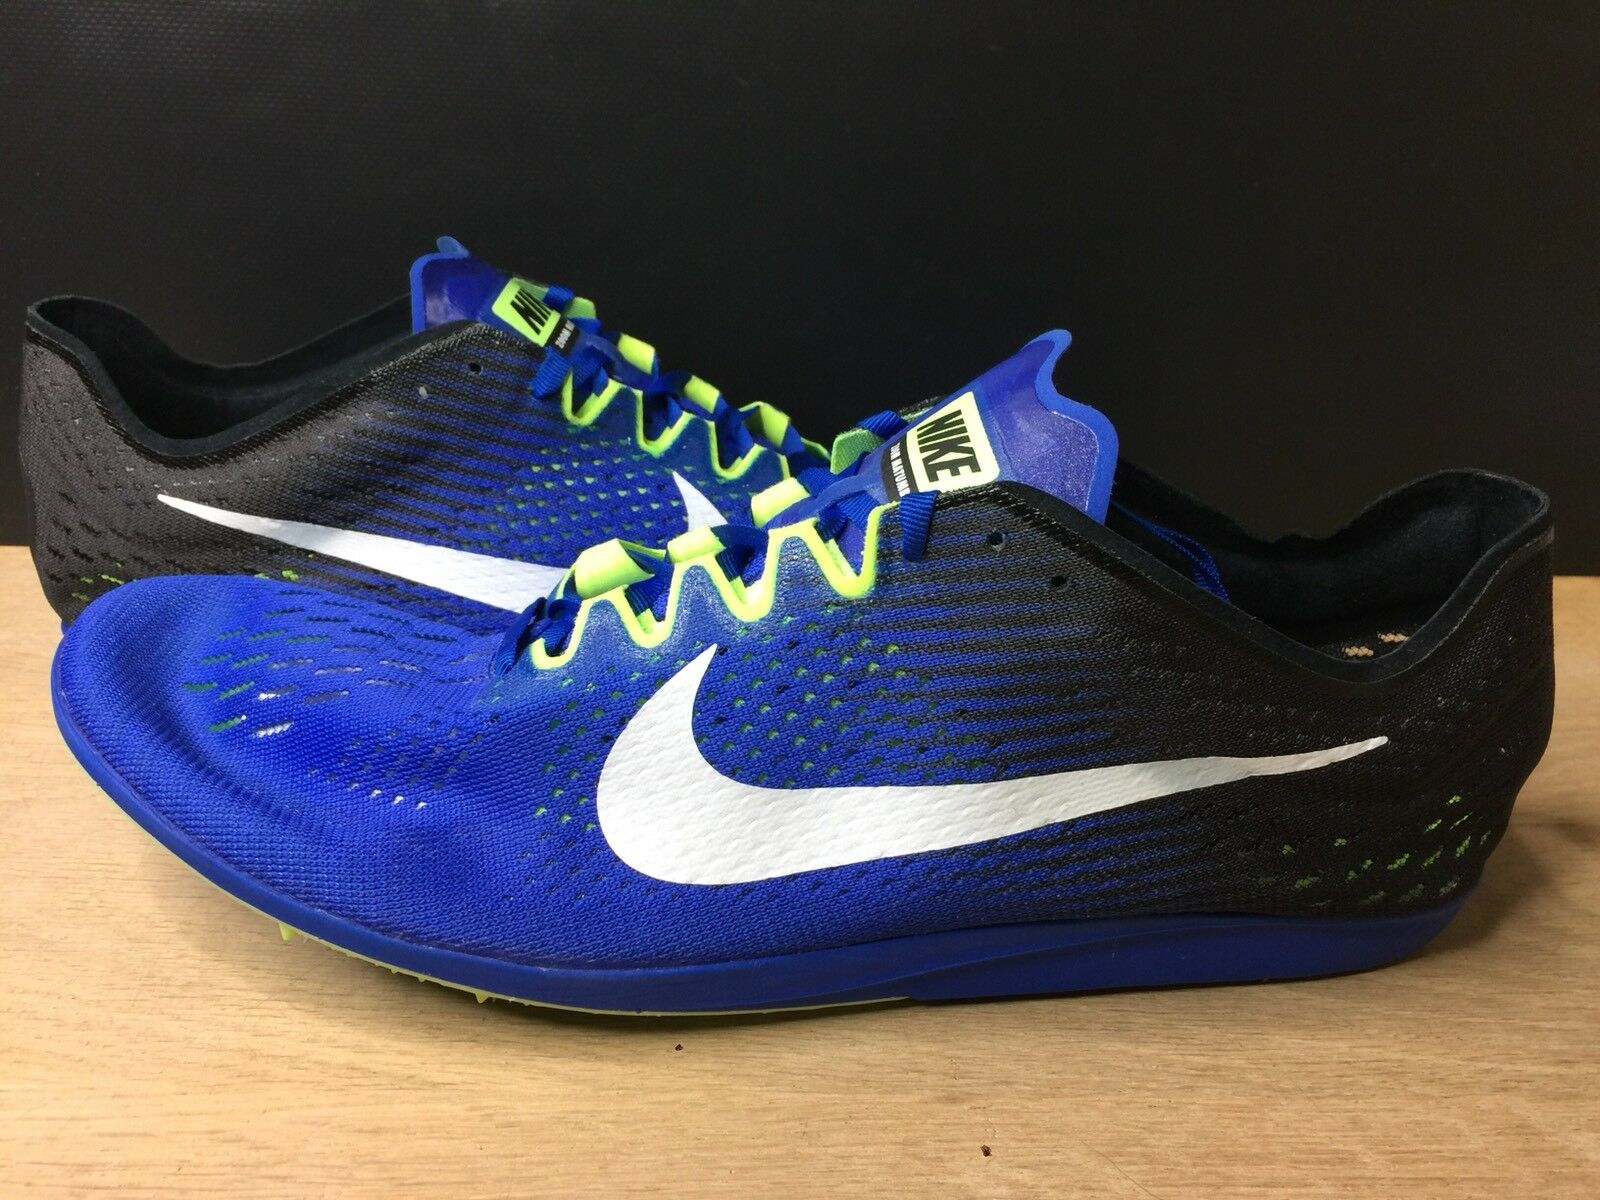 Nike Zoom Spikes Matumbo 3 Distance Track Spikes Zoom Blue 835995-413 Mens Size 15 750313